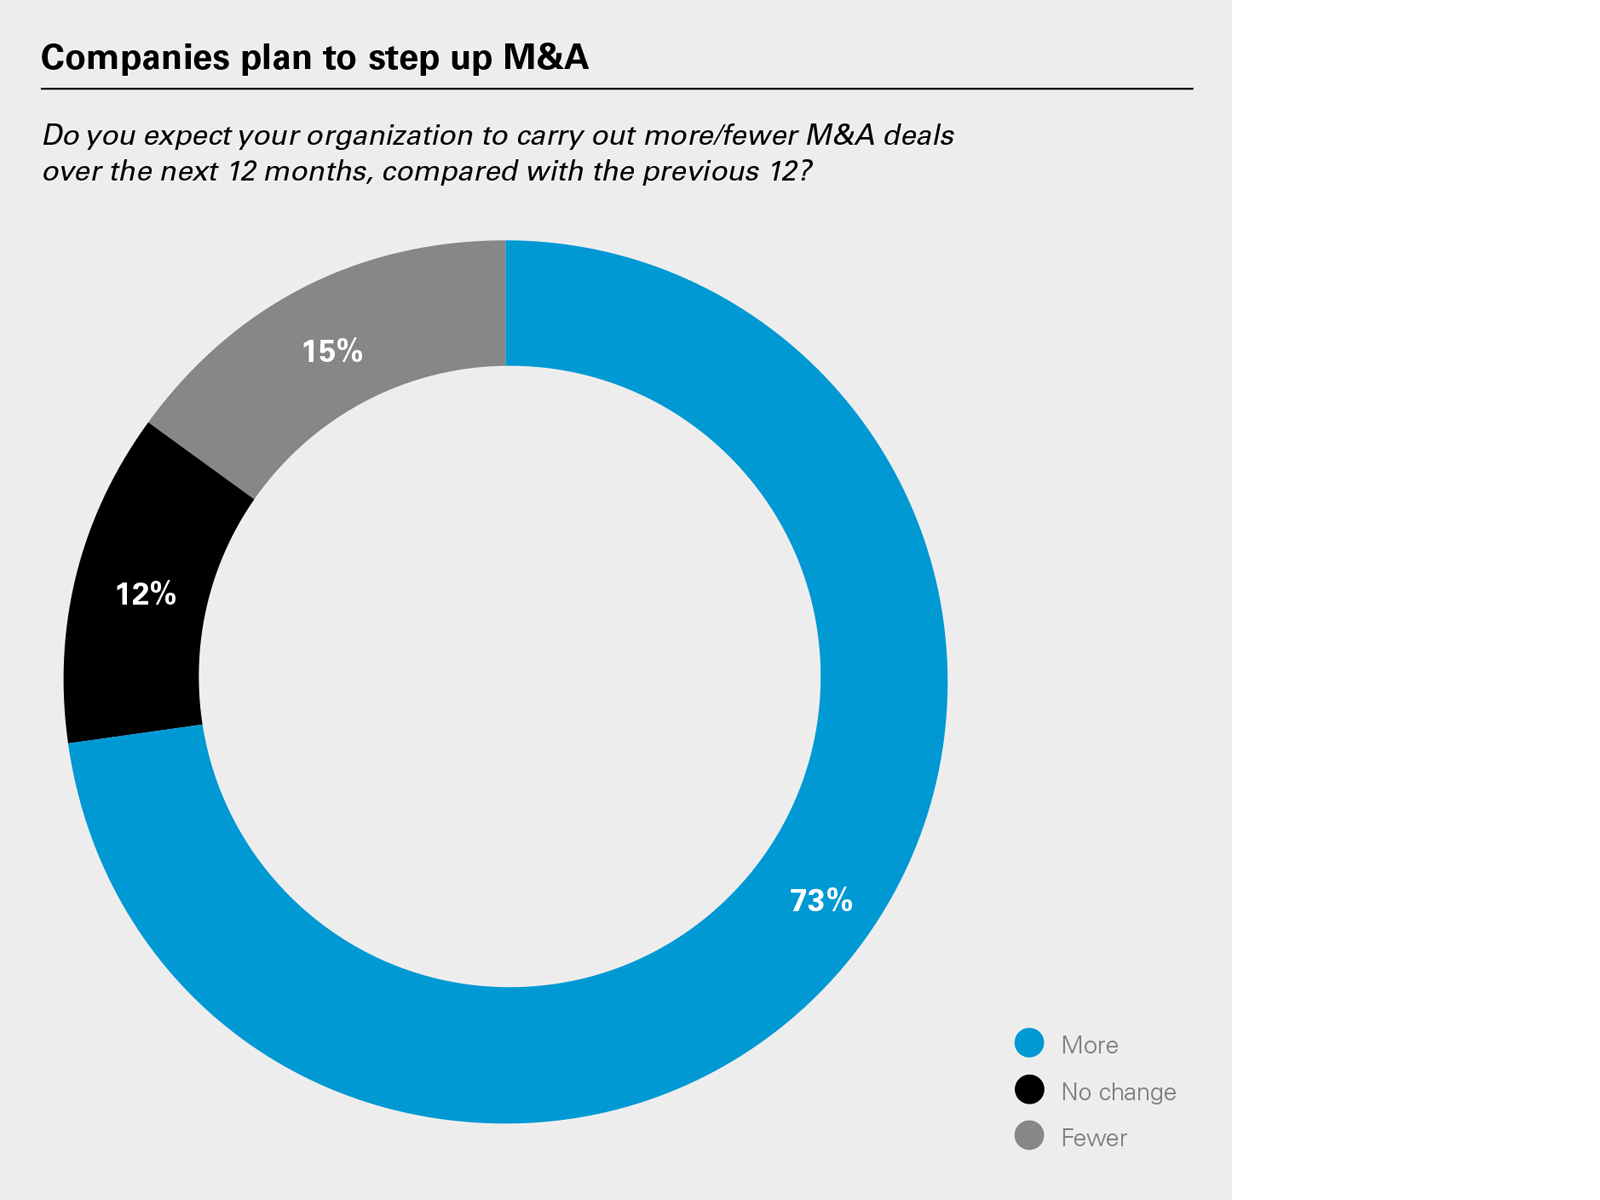 Companies plan to step up M&A